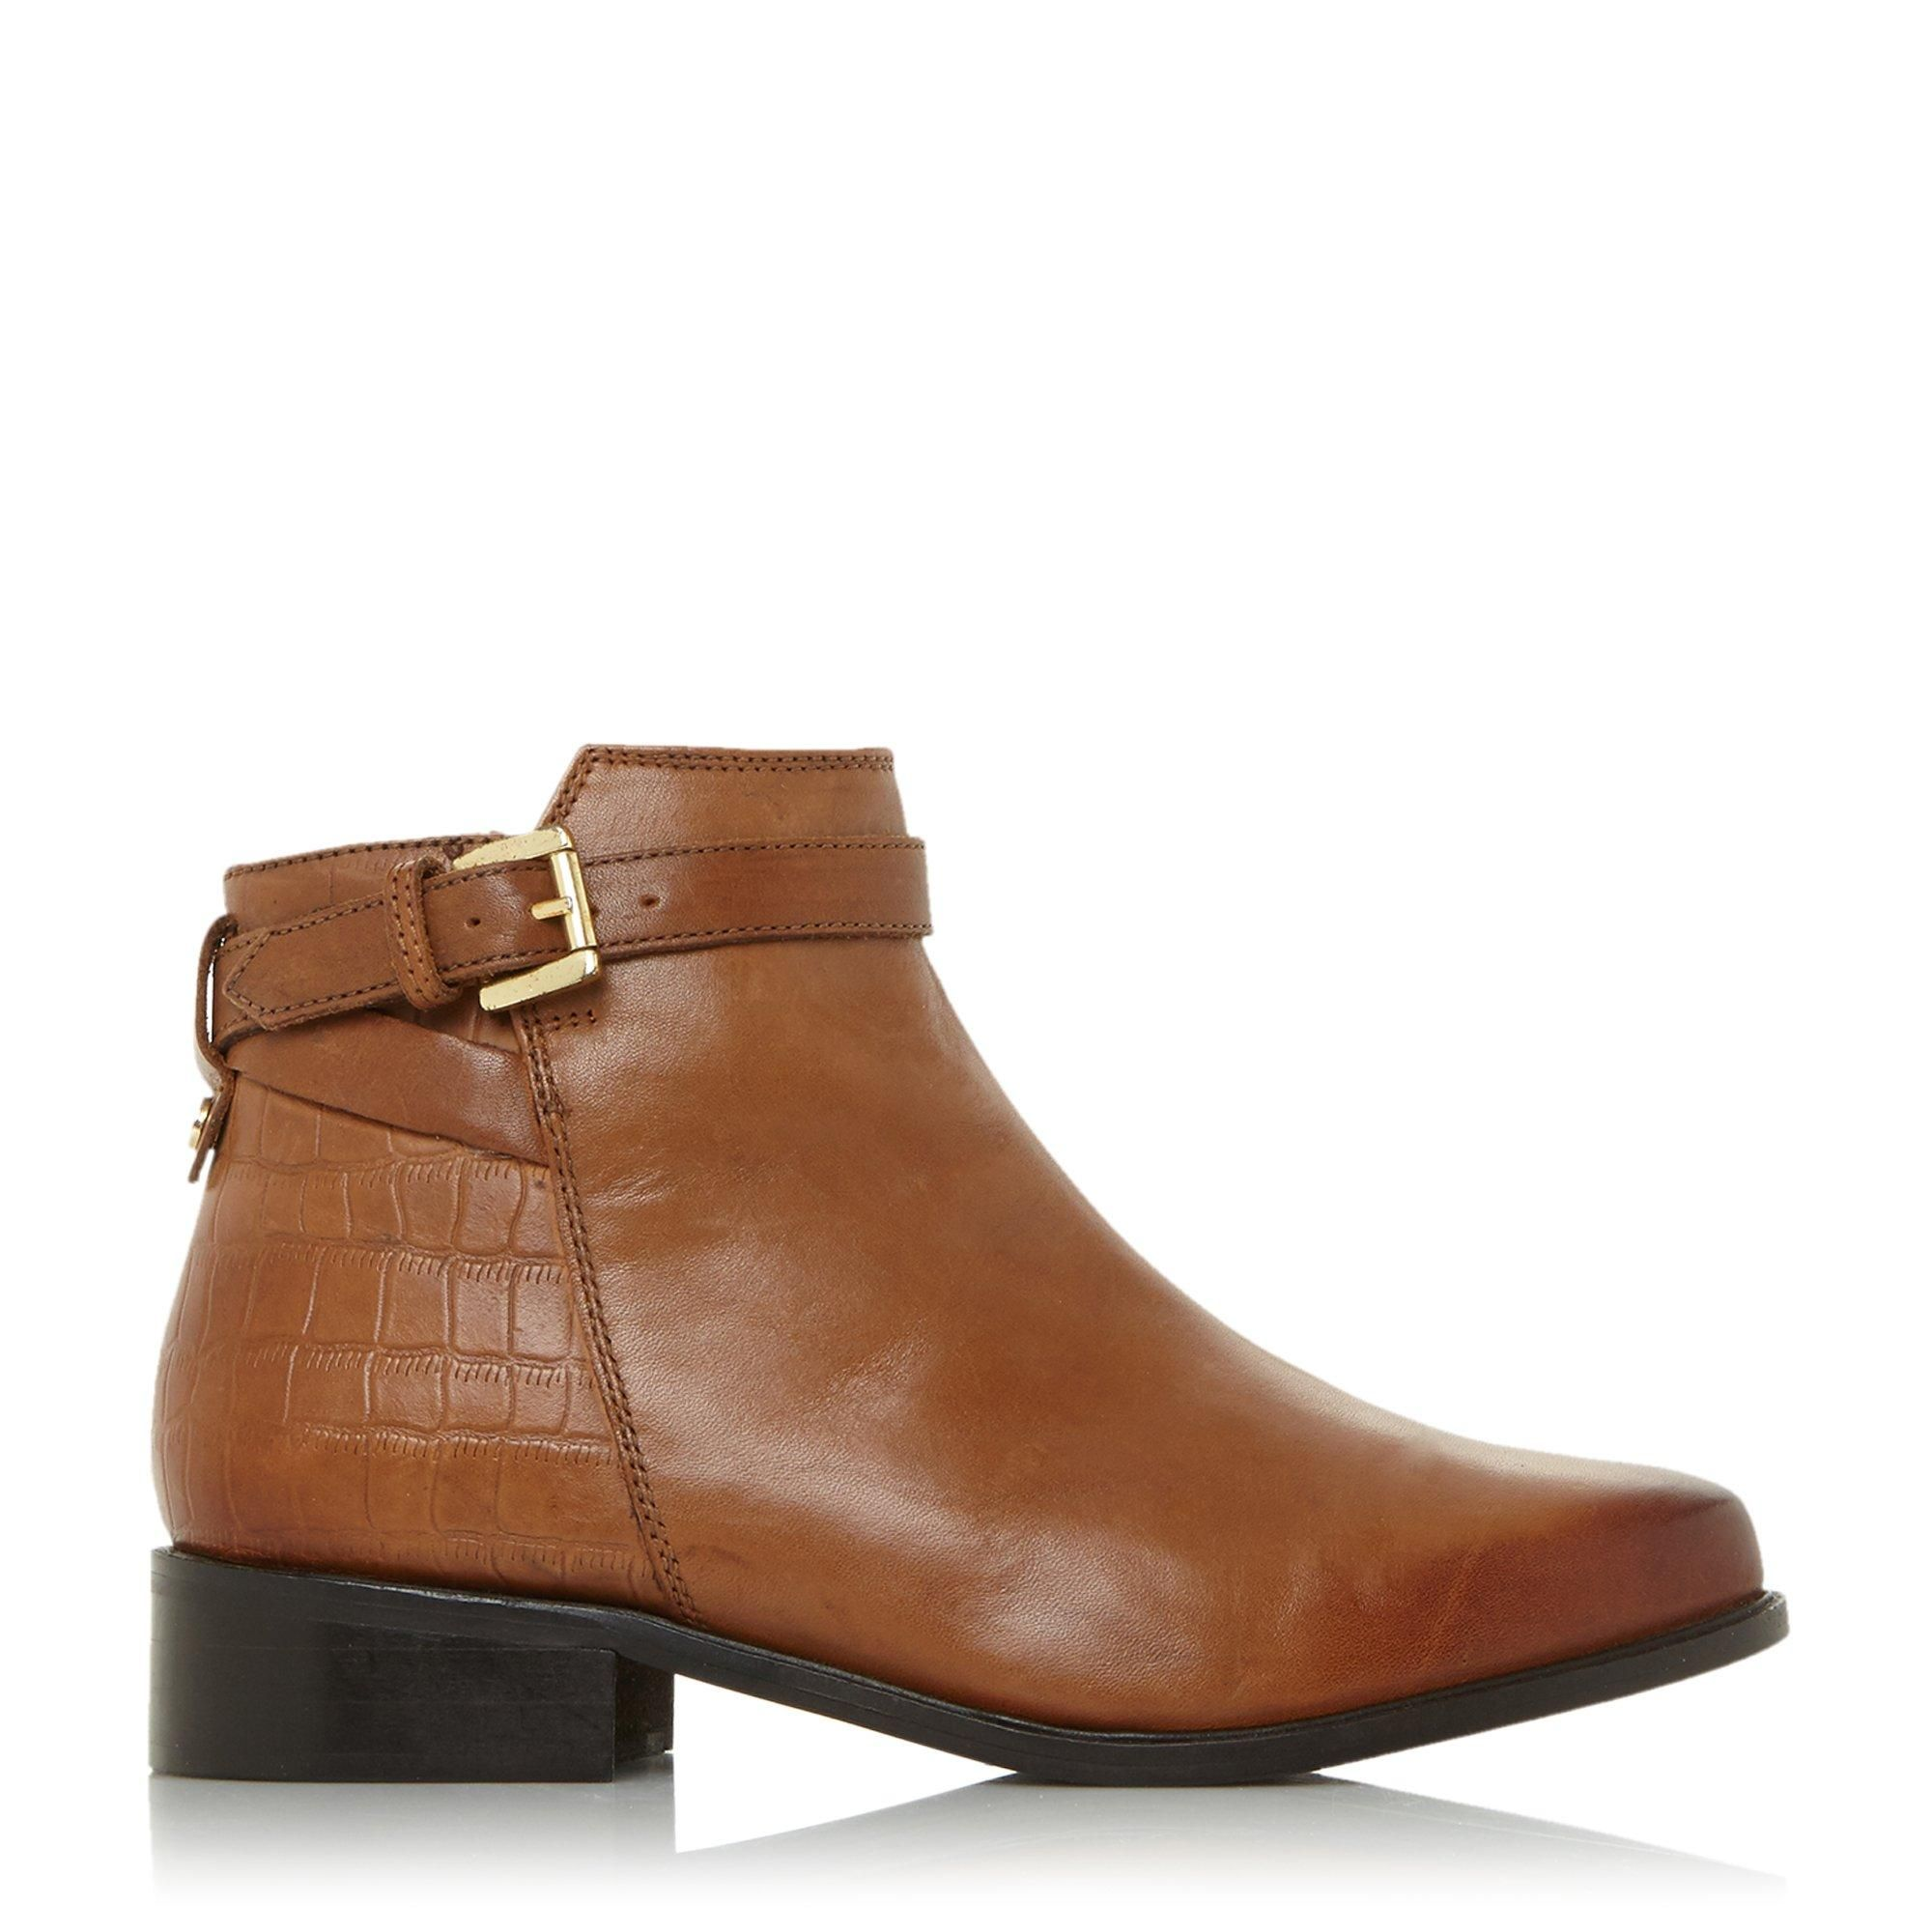 Dune Ladies POPPY Buckle Detail Side Zip Ankle Boots